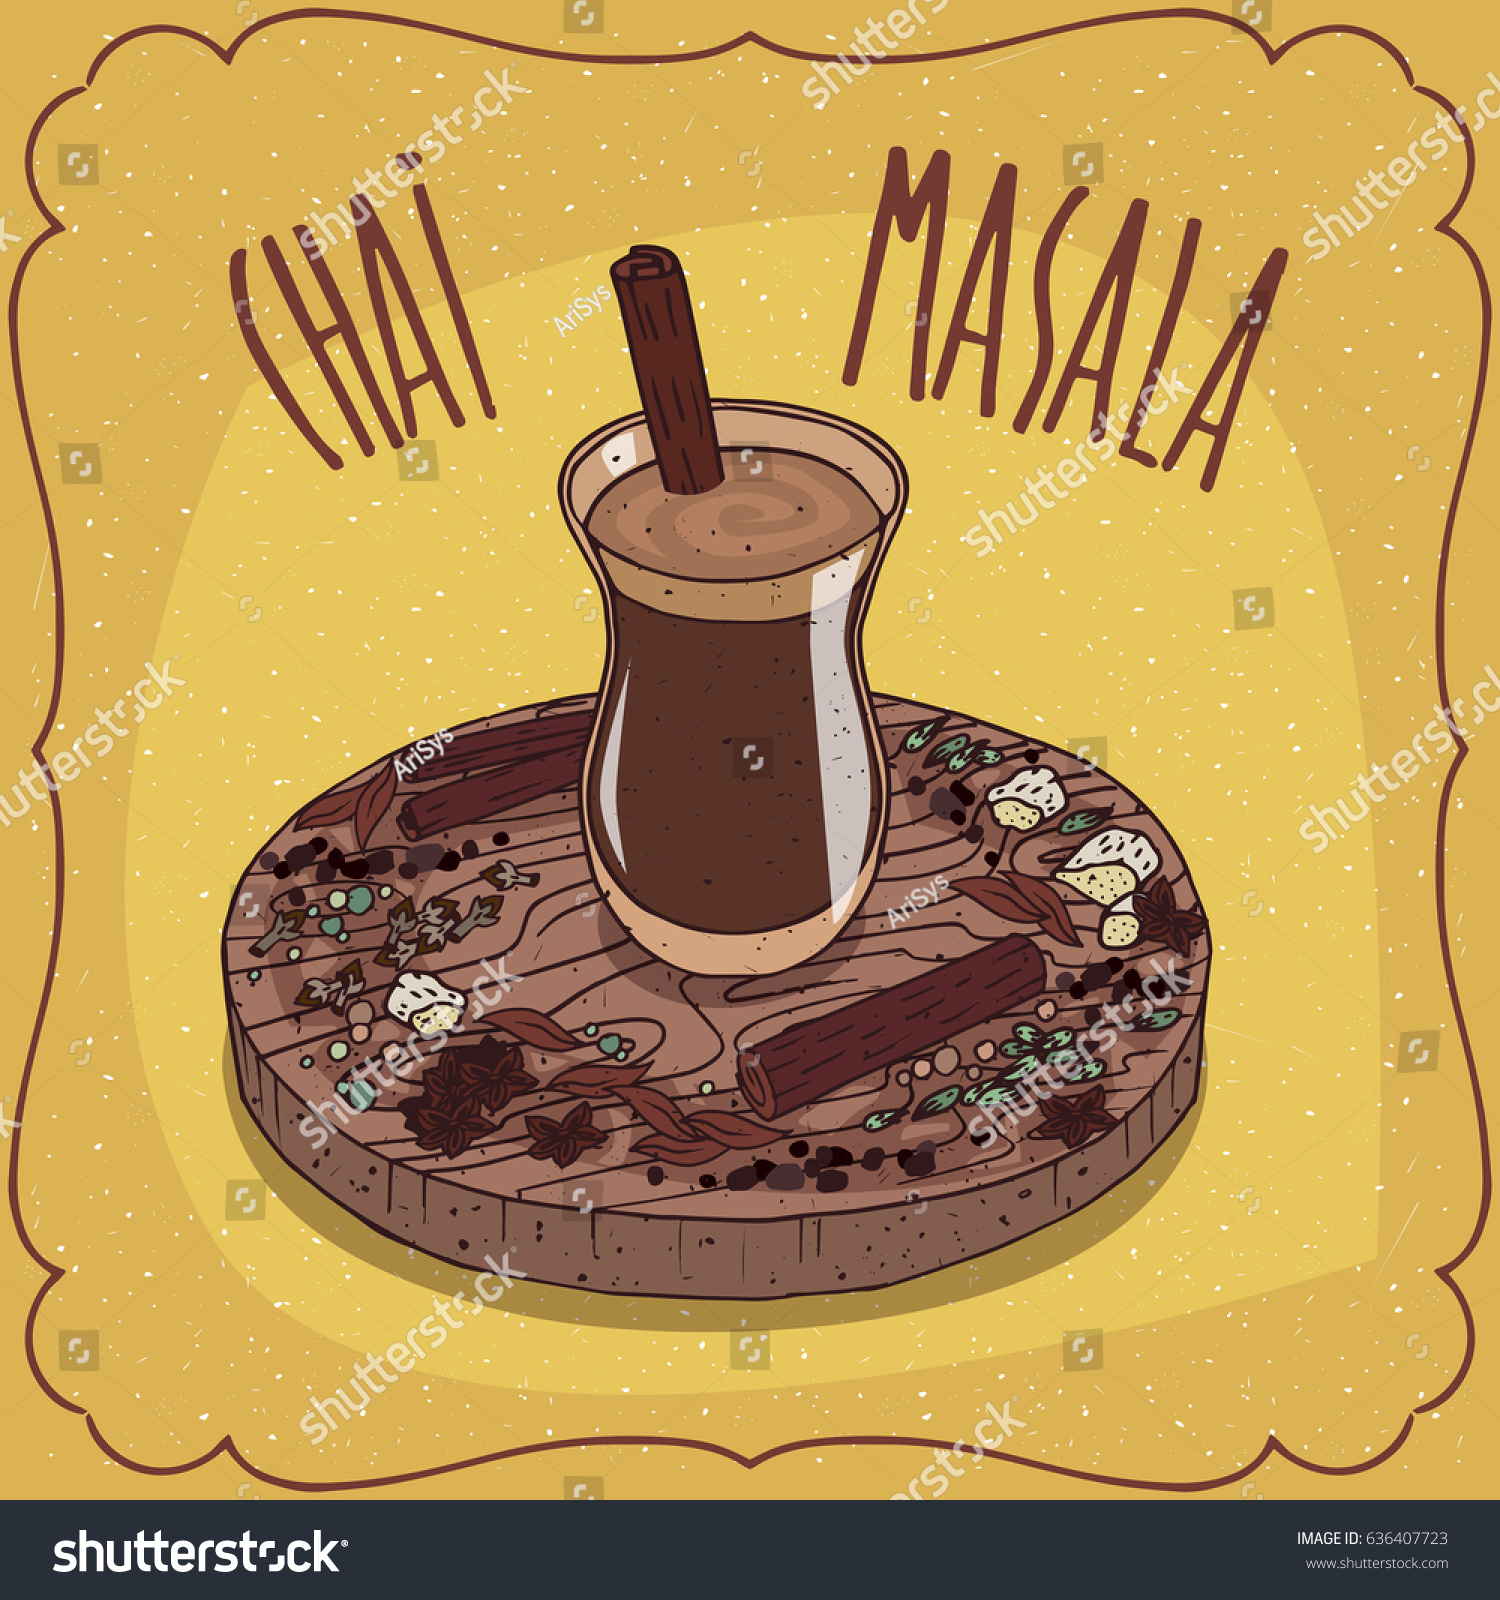 Traditional Food Of Indian Cuisine Masala Chai Like Mixed Spice Tea With Mixture